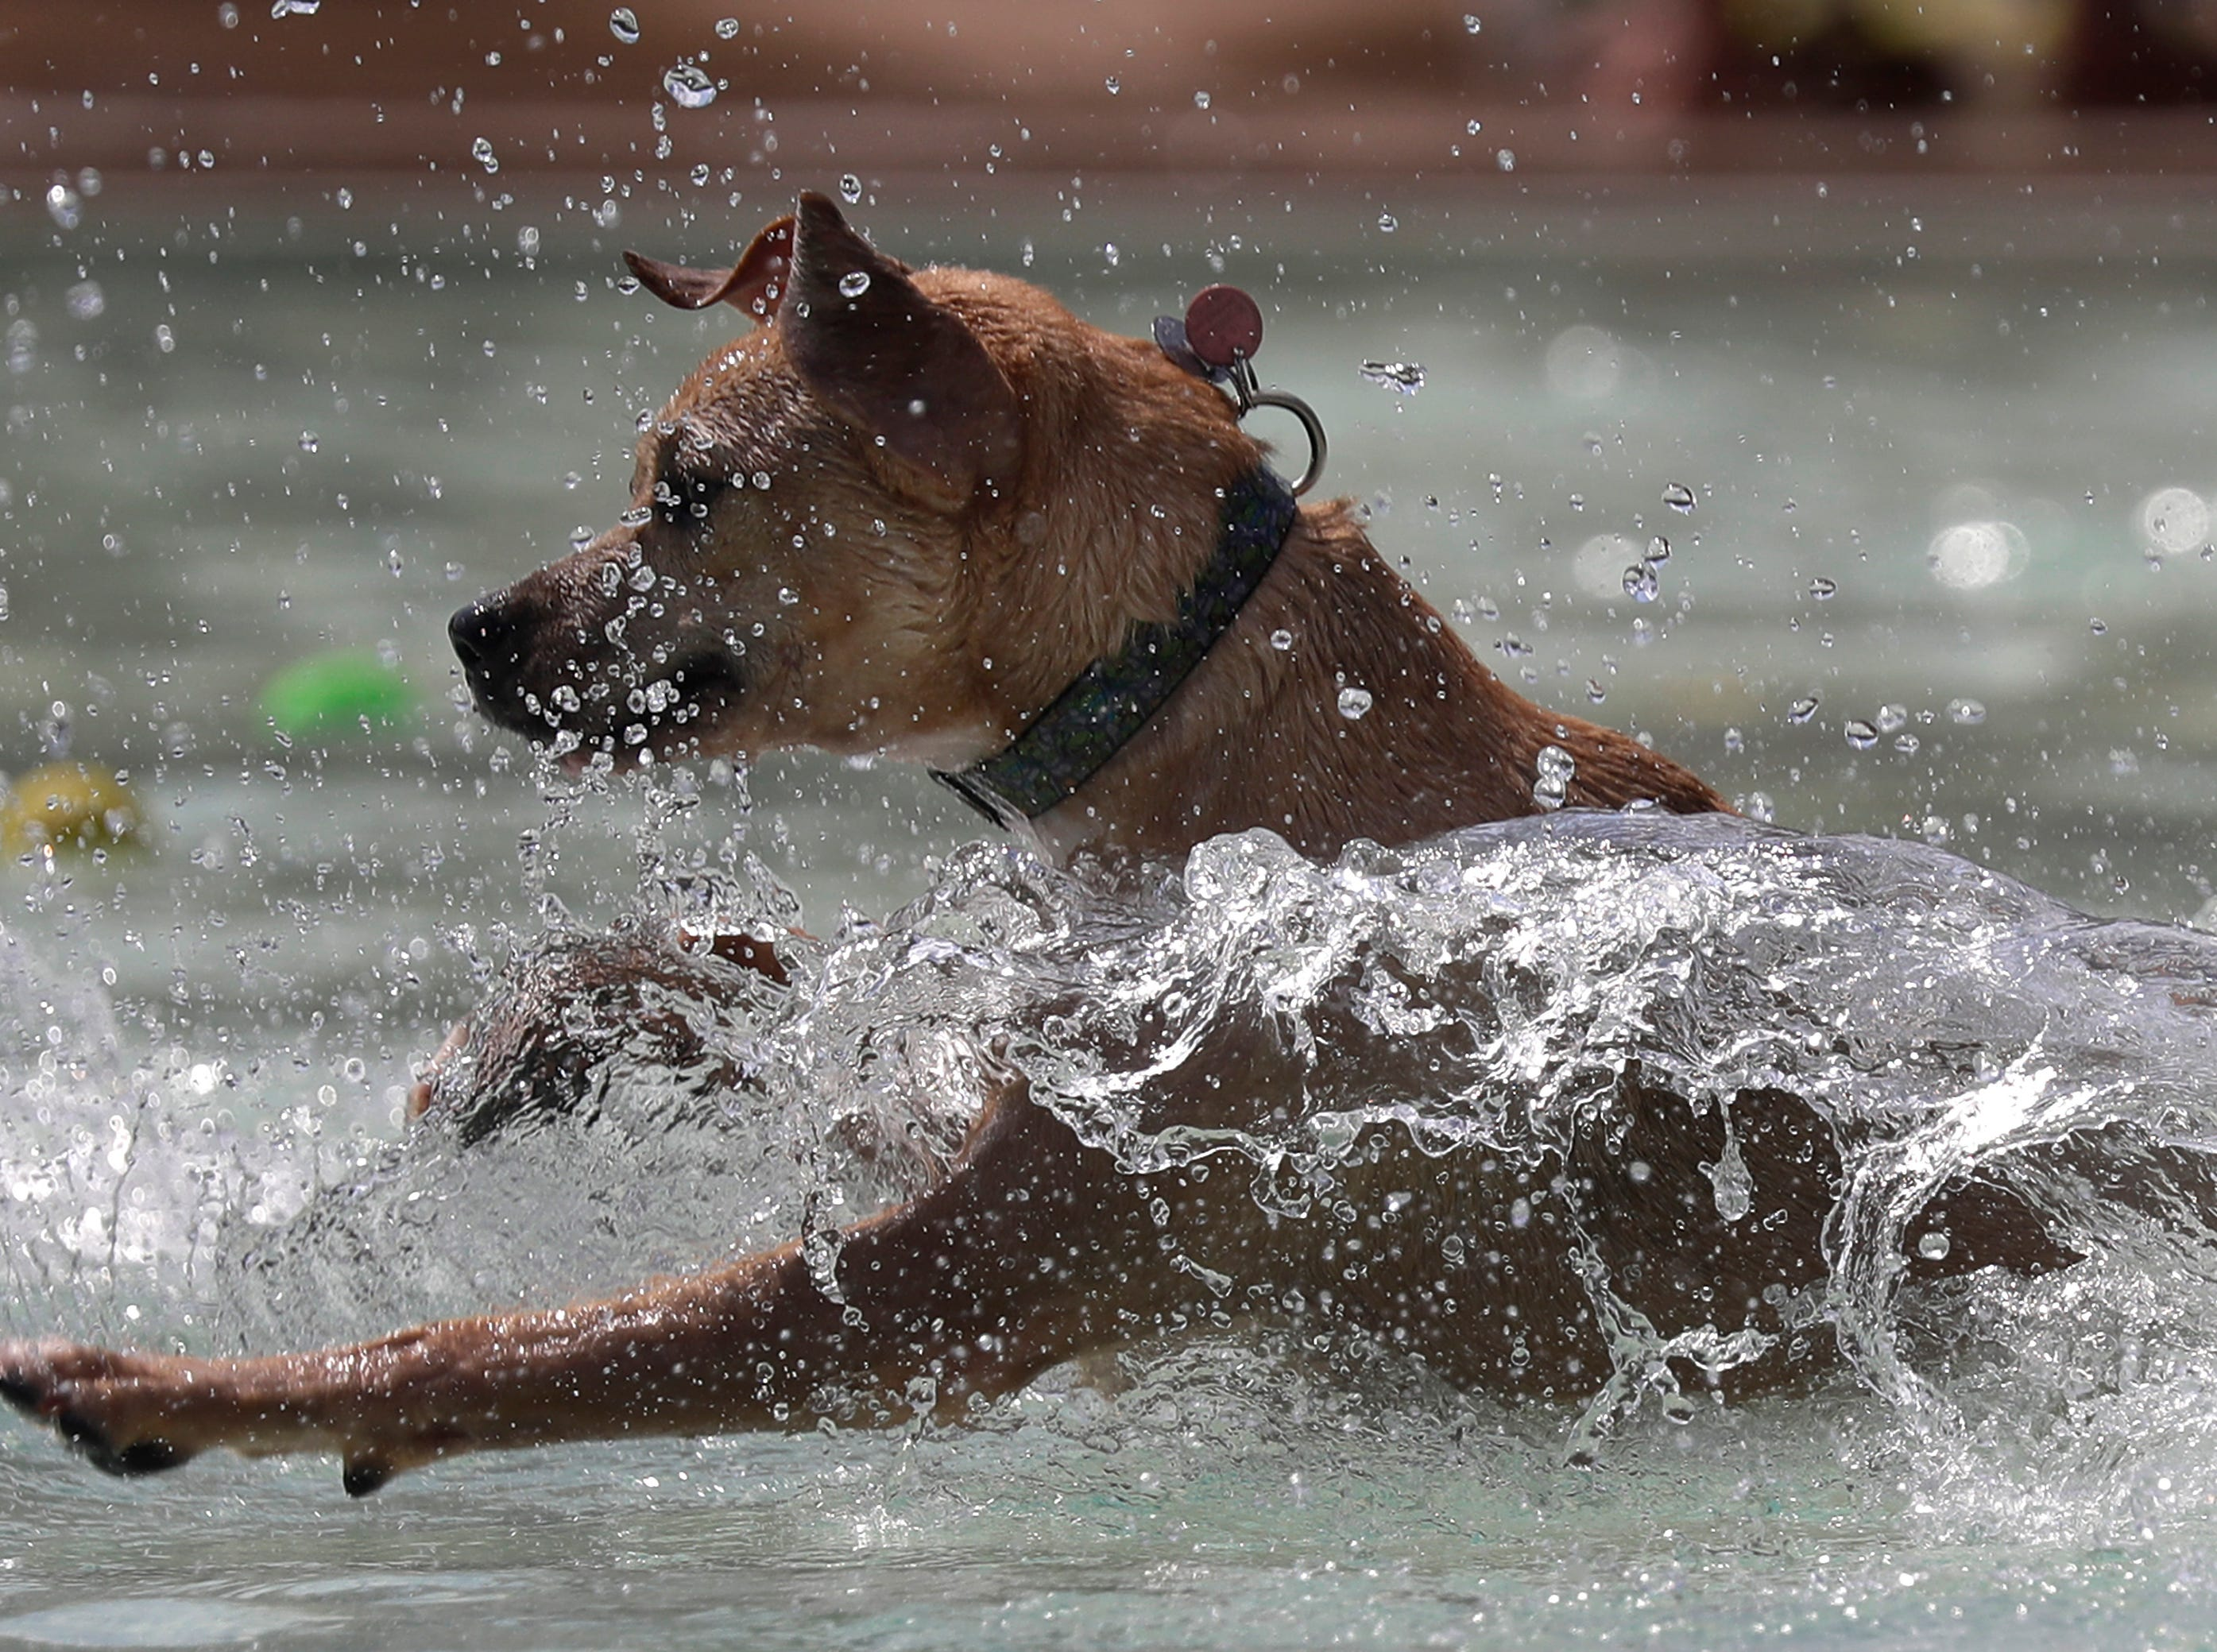 Drool in the Pool at Neenah City Pool on Thursday, August 23, 2018, in Neenah, Wis. Drool in the Pool is an annual event that invites dog owners to bring their pets for a canine only swim.Wm. Glasheen/USA TODAY  NETWORKWisconsin